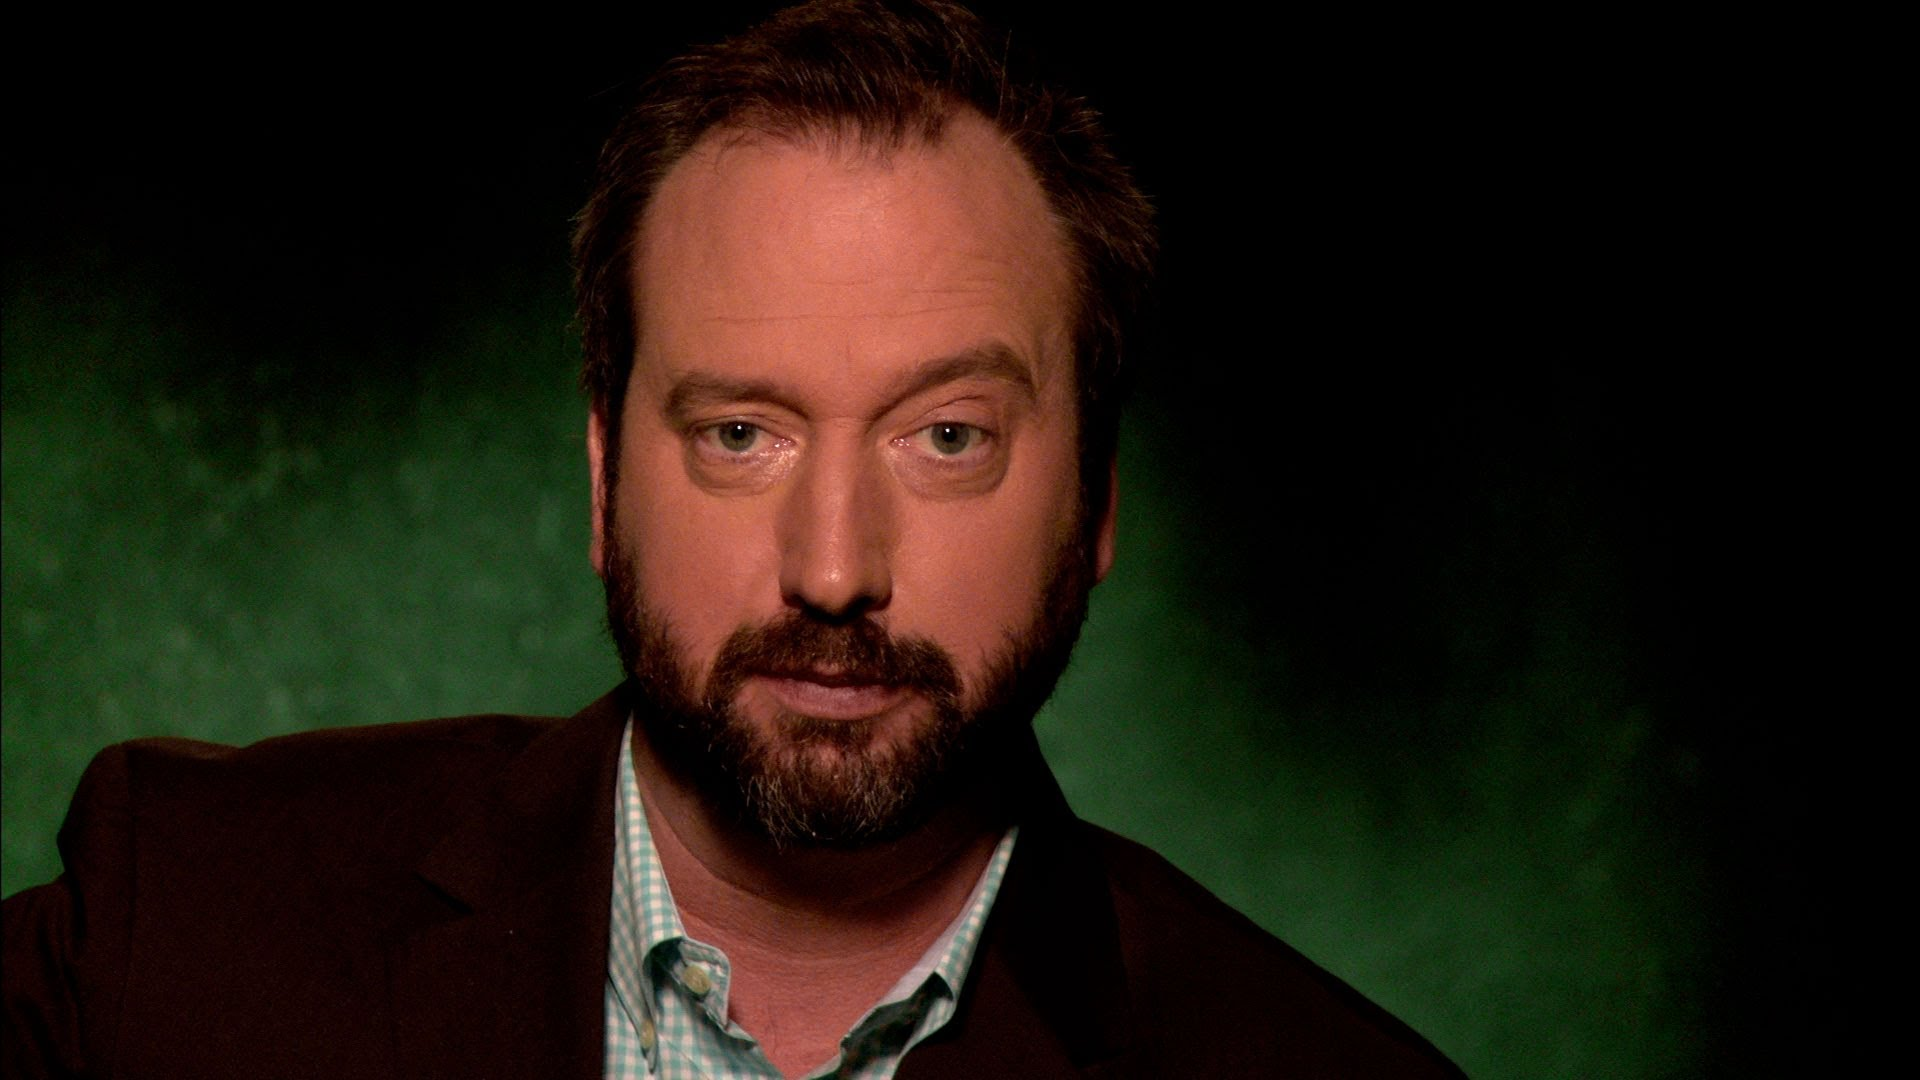 Tom Green HQ wallpapers